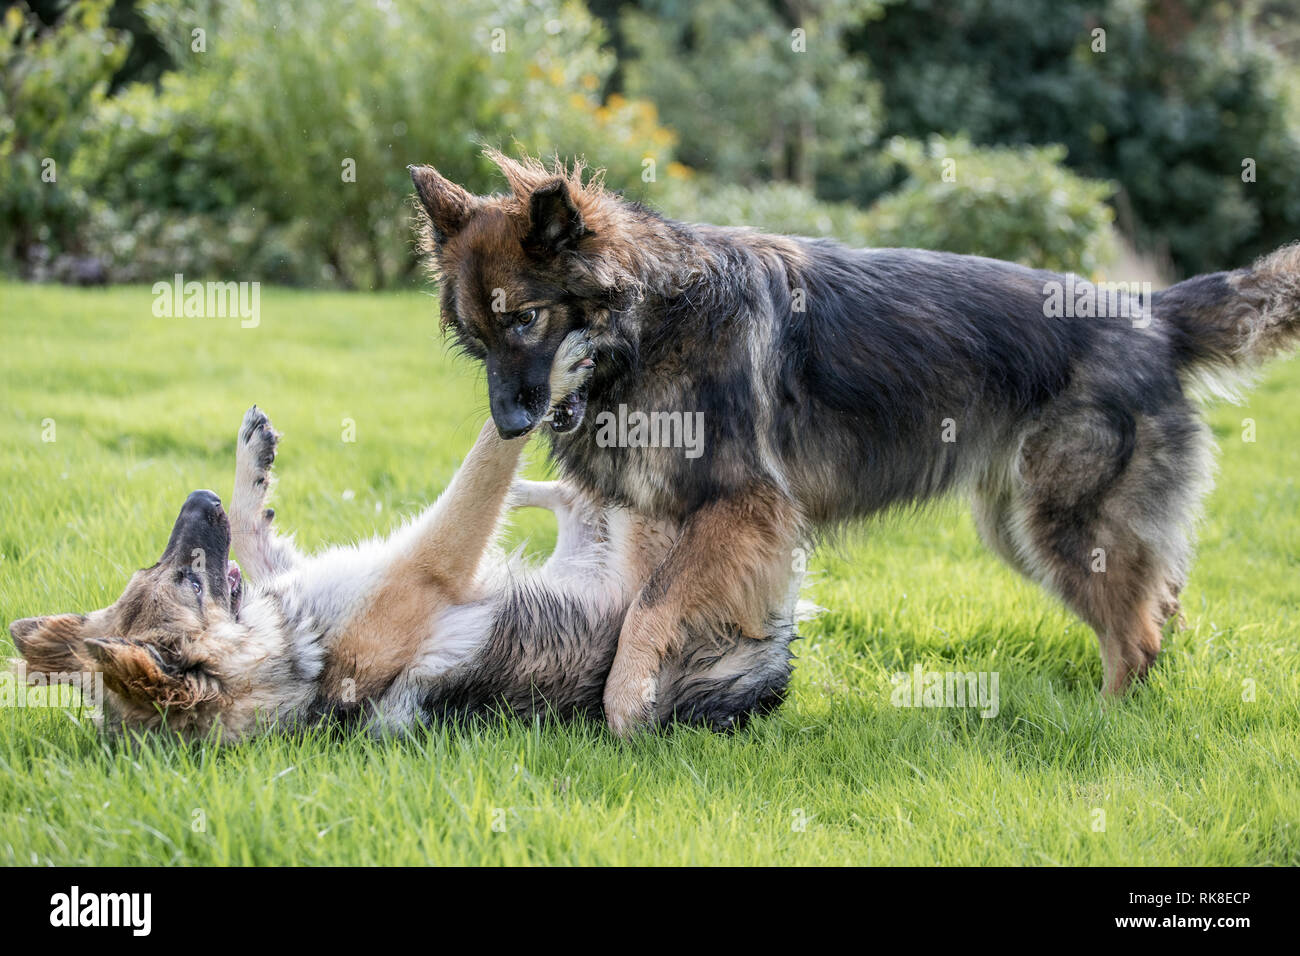 Pair of German Shepherd Dogs playing fighting together, one is gently biting the other's one front leg - Stock Image